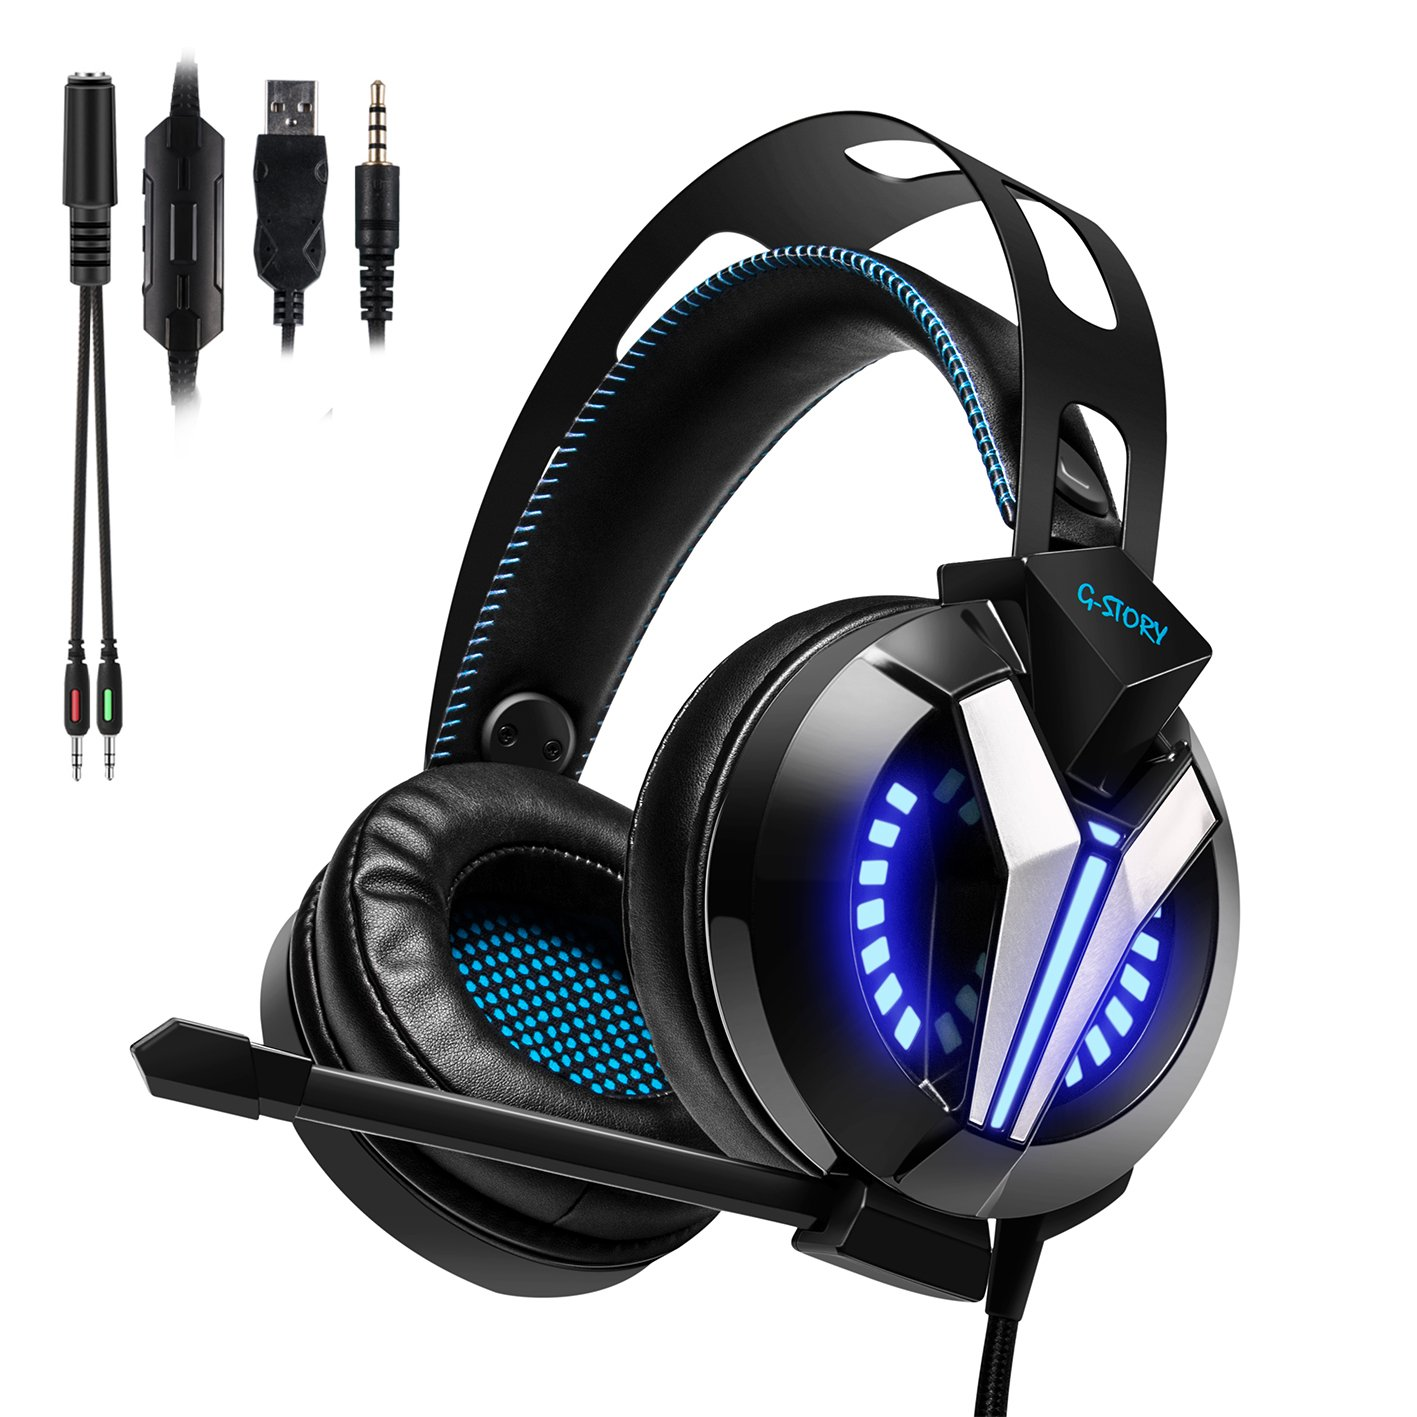 G-STORY Gaming Headset with Noise Cancelling Microphone, Volume Control Functions, LED Light and Bass Surround Stereo for PS4/PC Computer/Laptop/Mac/Mobil/iPhone/iPad GSH012